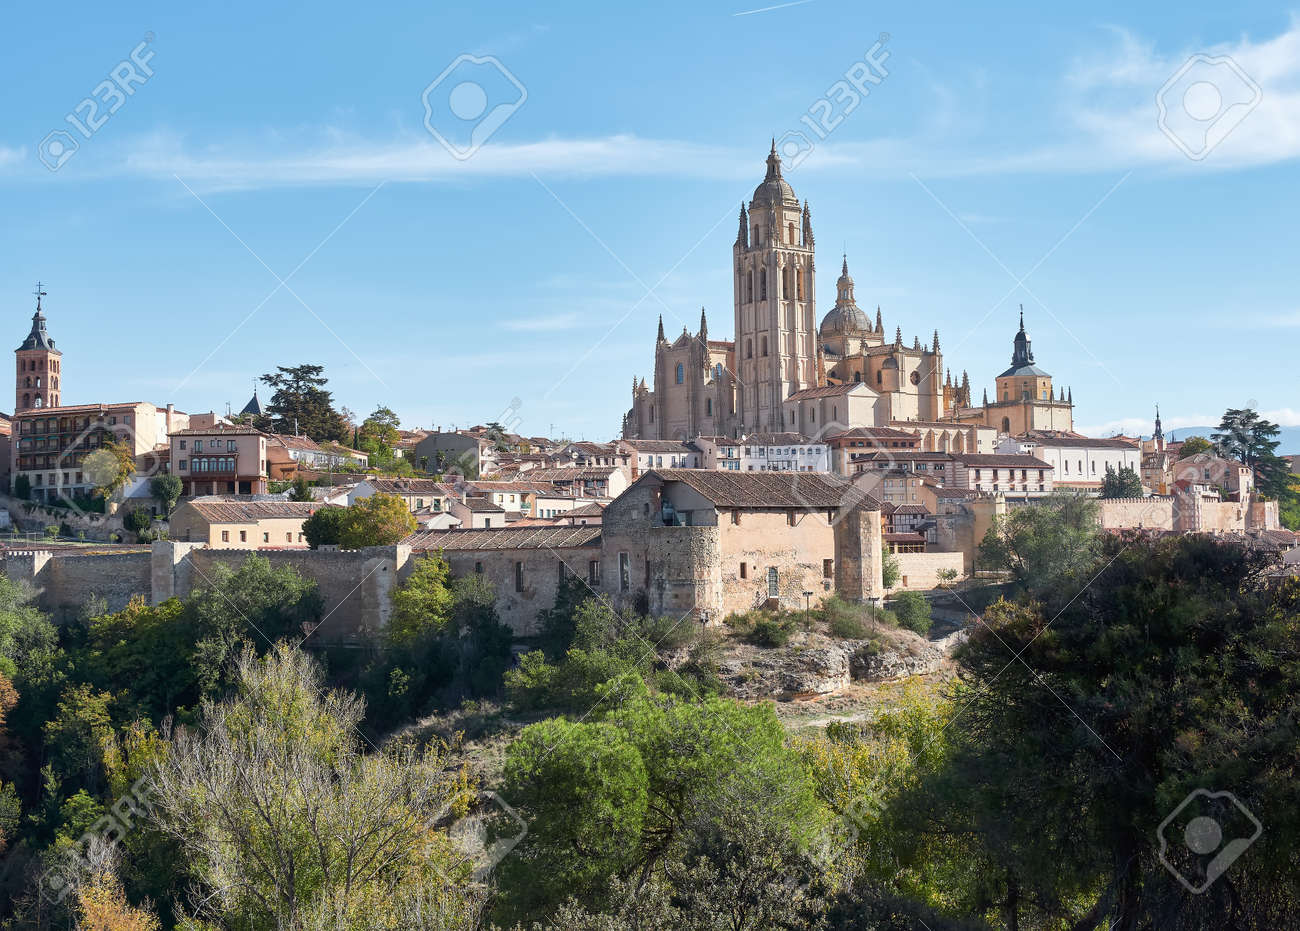 Aerial view of the city of Segovia, its wall, the Cathedral of Our Lady of the Assumption, as well as the ancient medieval architecture - 164723853